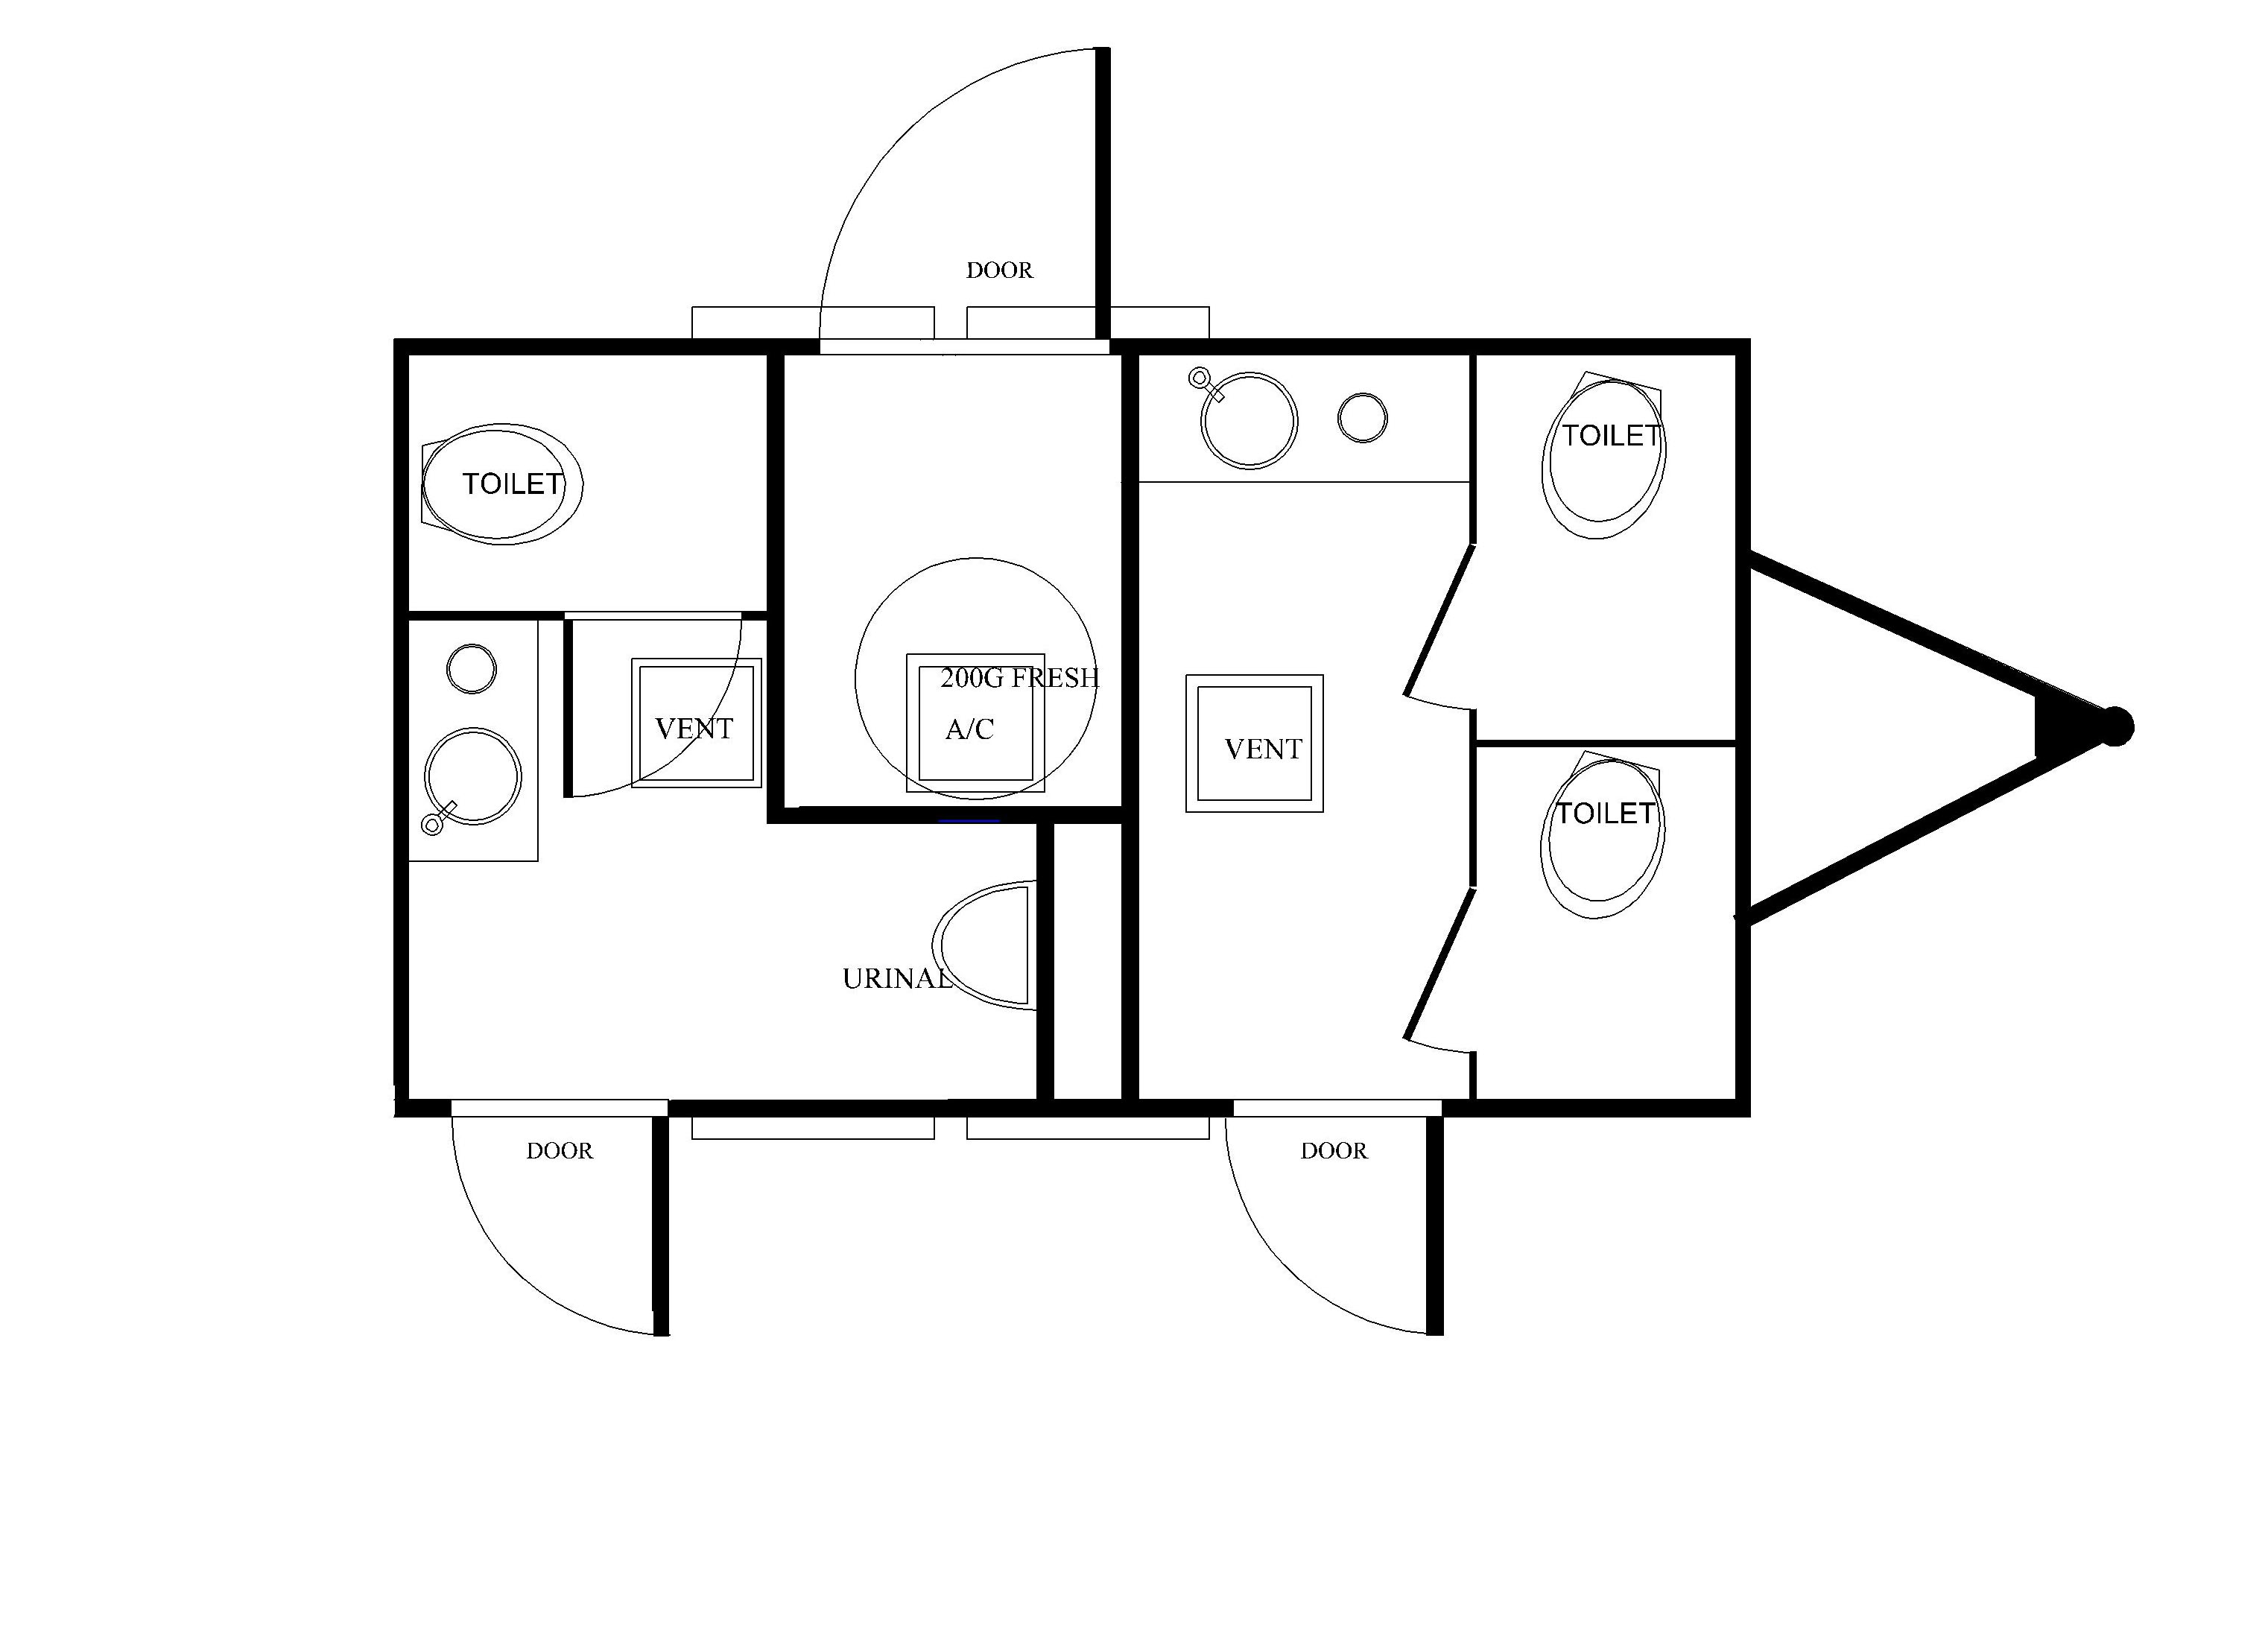 Floorplan / Layout